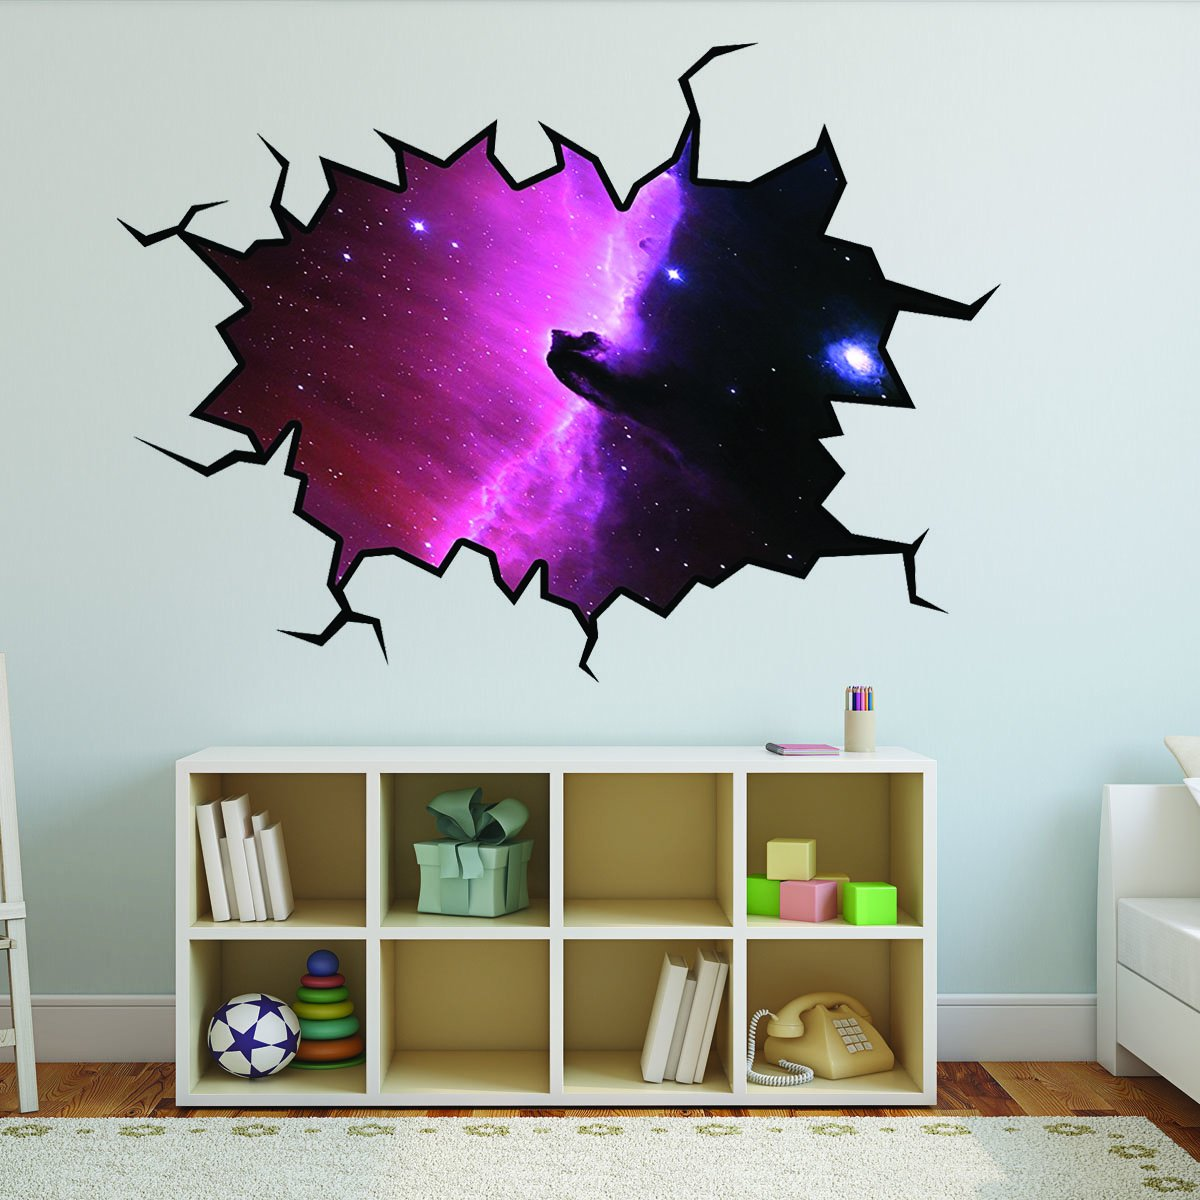 VWAQ Outer Space Wall Decal Nebula Galaxy Sticker Hole In The Wall - WC8 - VWAQ Vinyl Wall Art Quotes and Prints